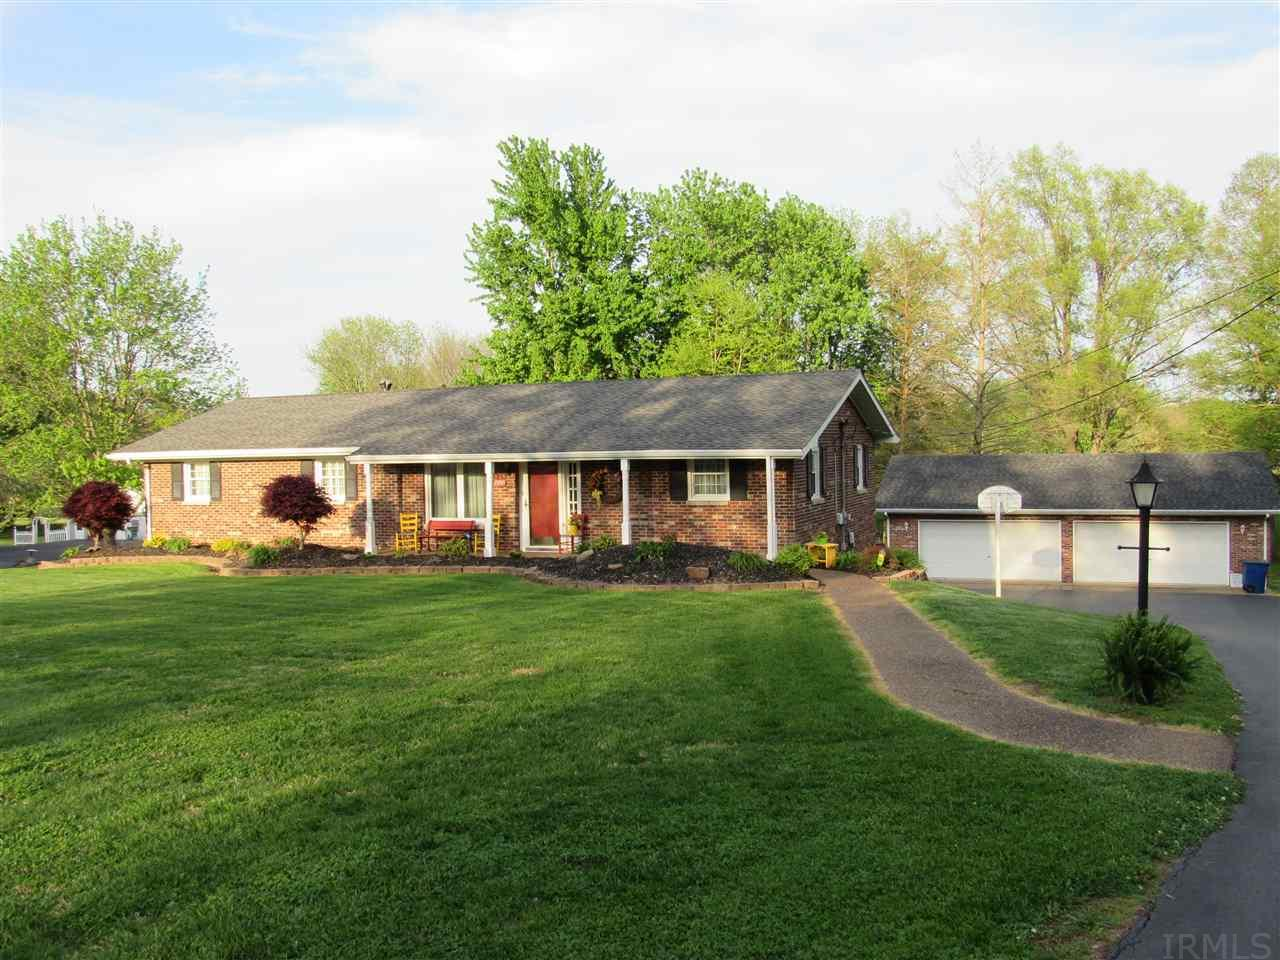 15743 Old State, Evansville, IN 47725